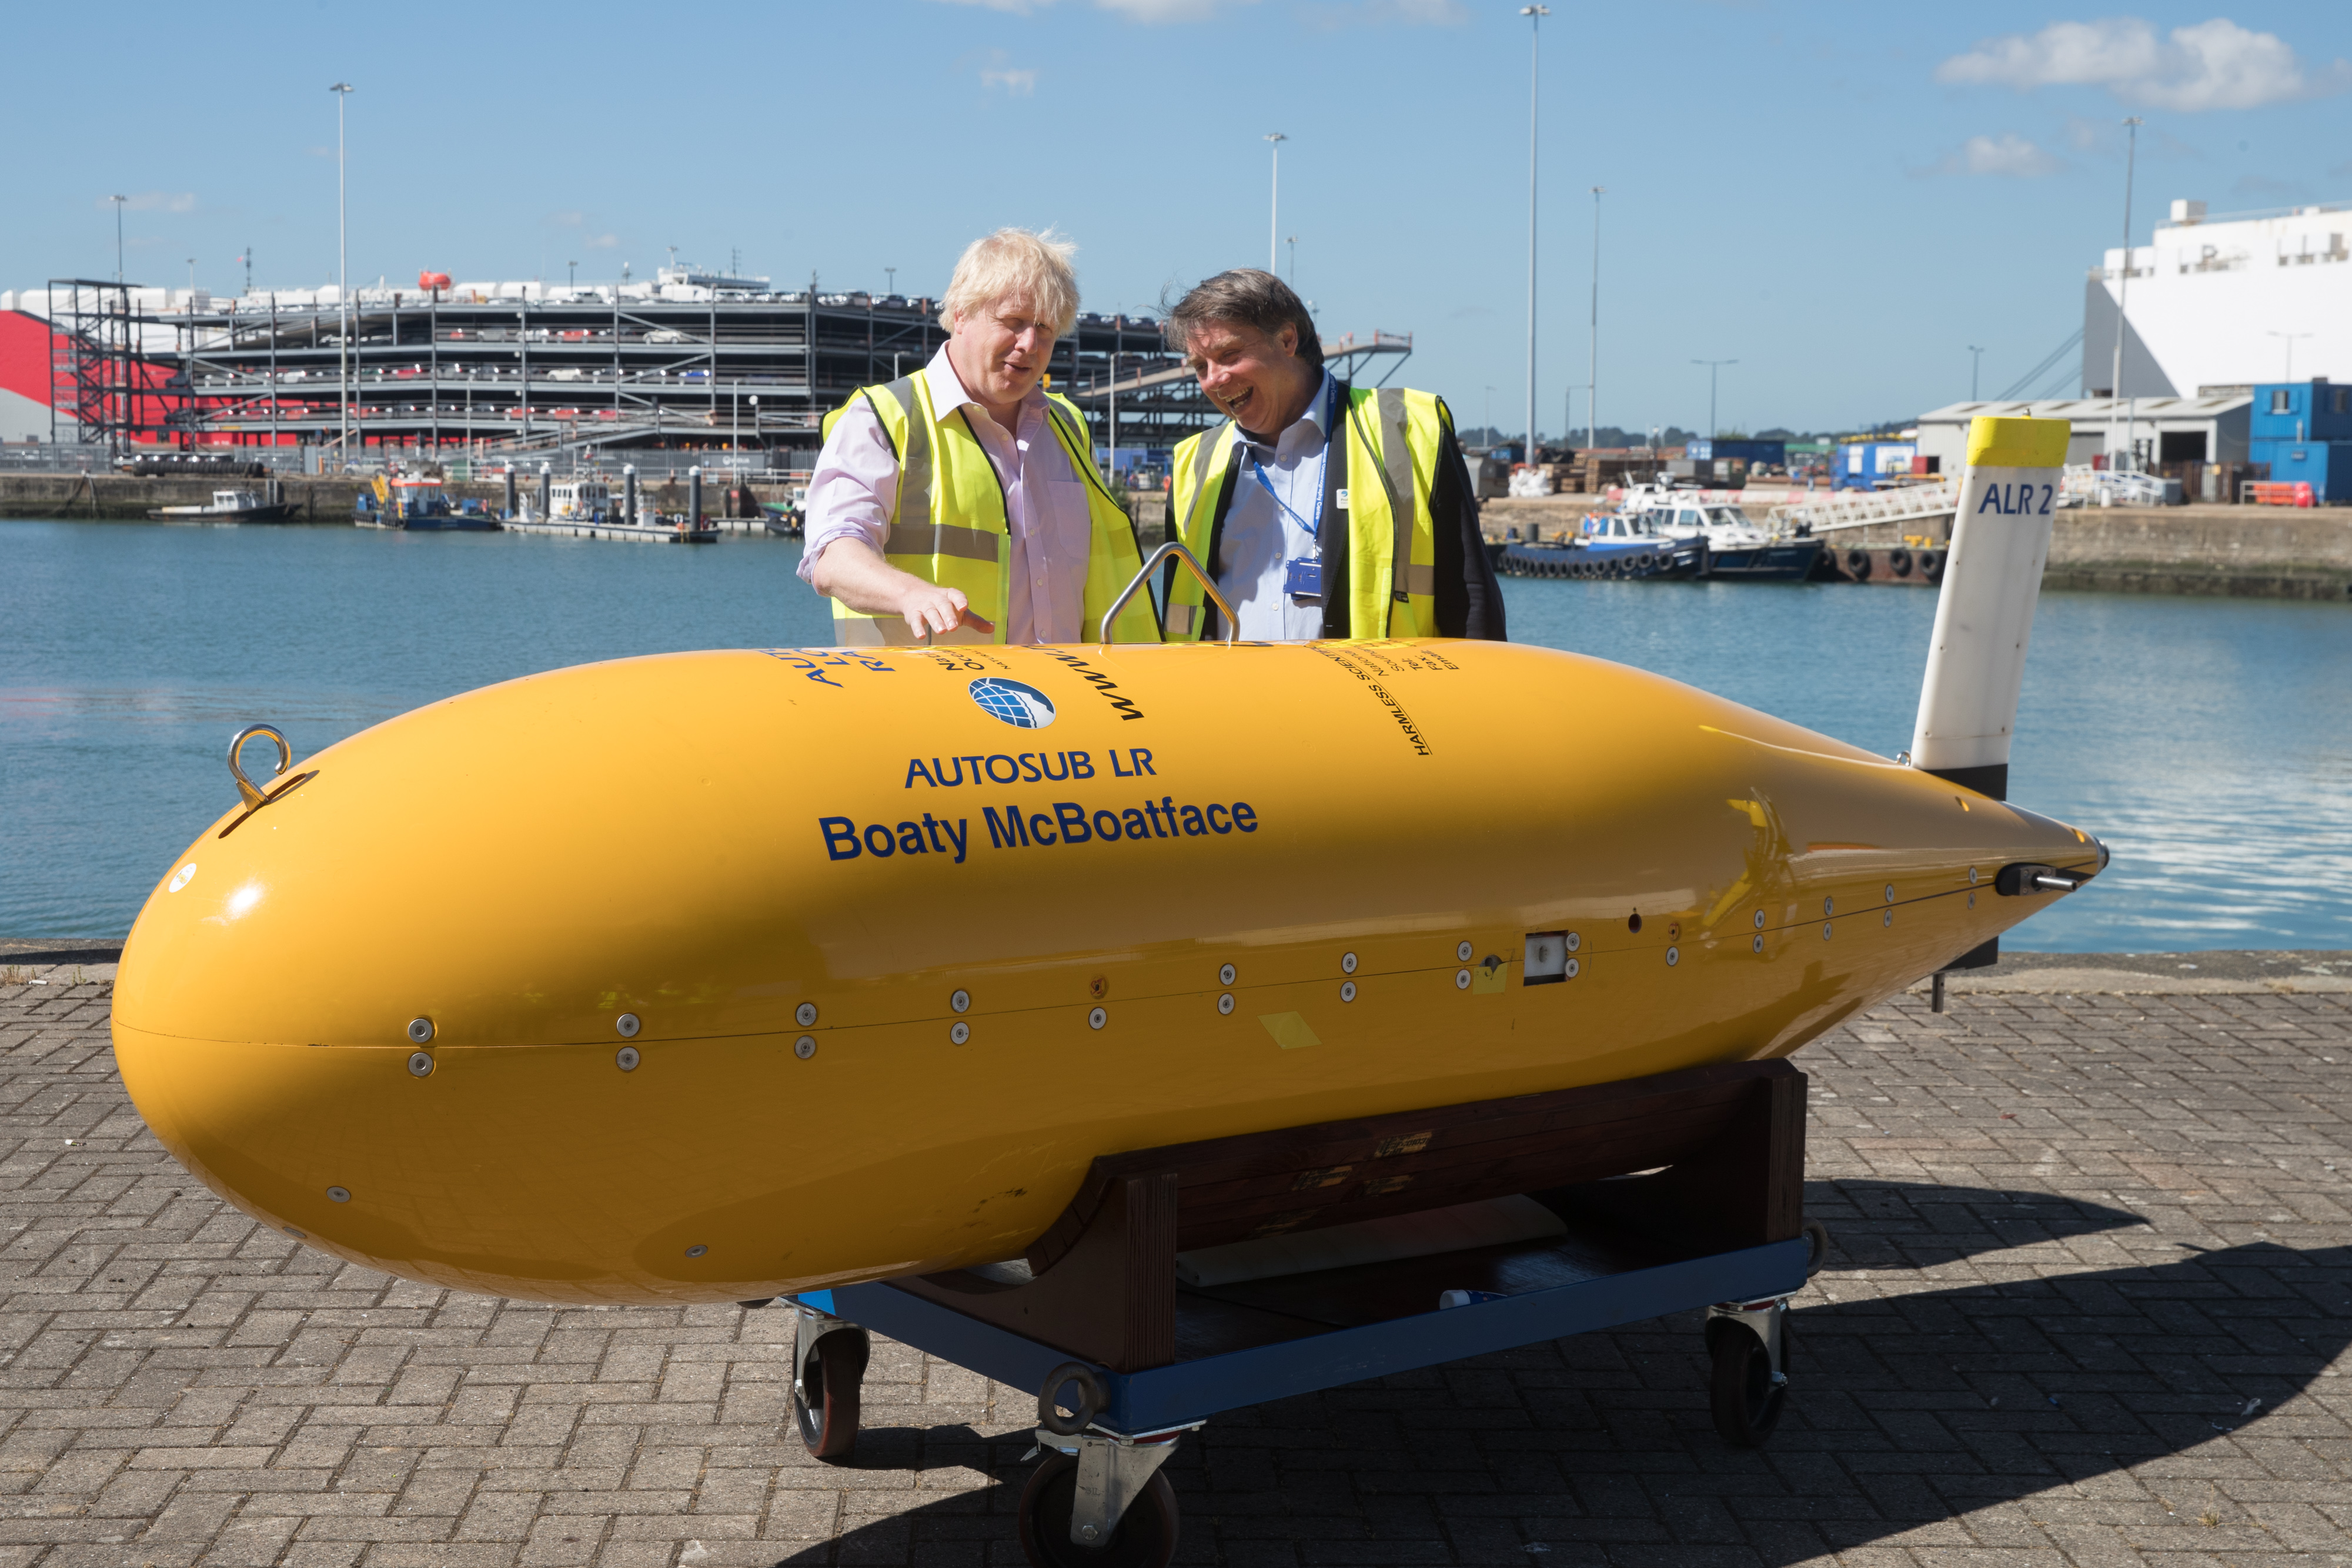 Boaty McBoatface Comes Through With Actual Groundbreaking Discovery - InsideHook